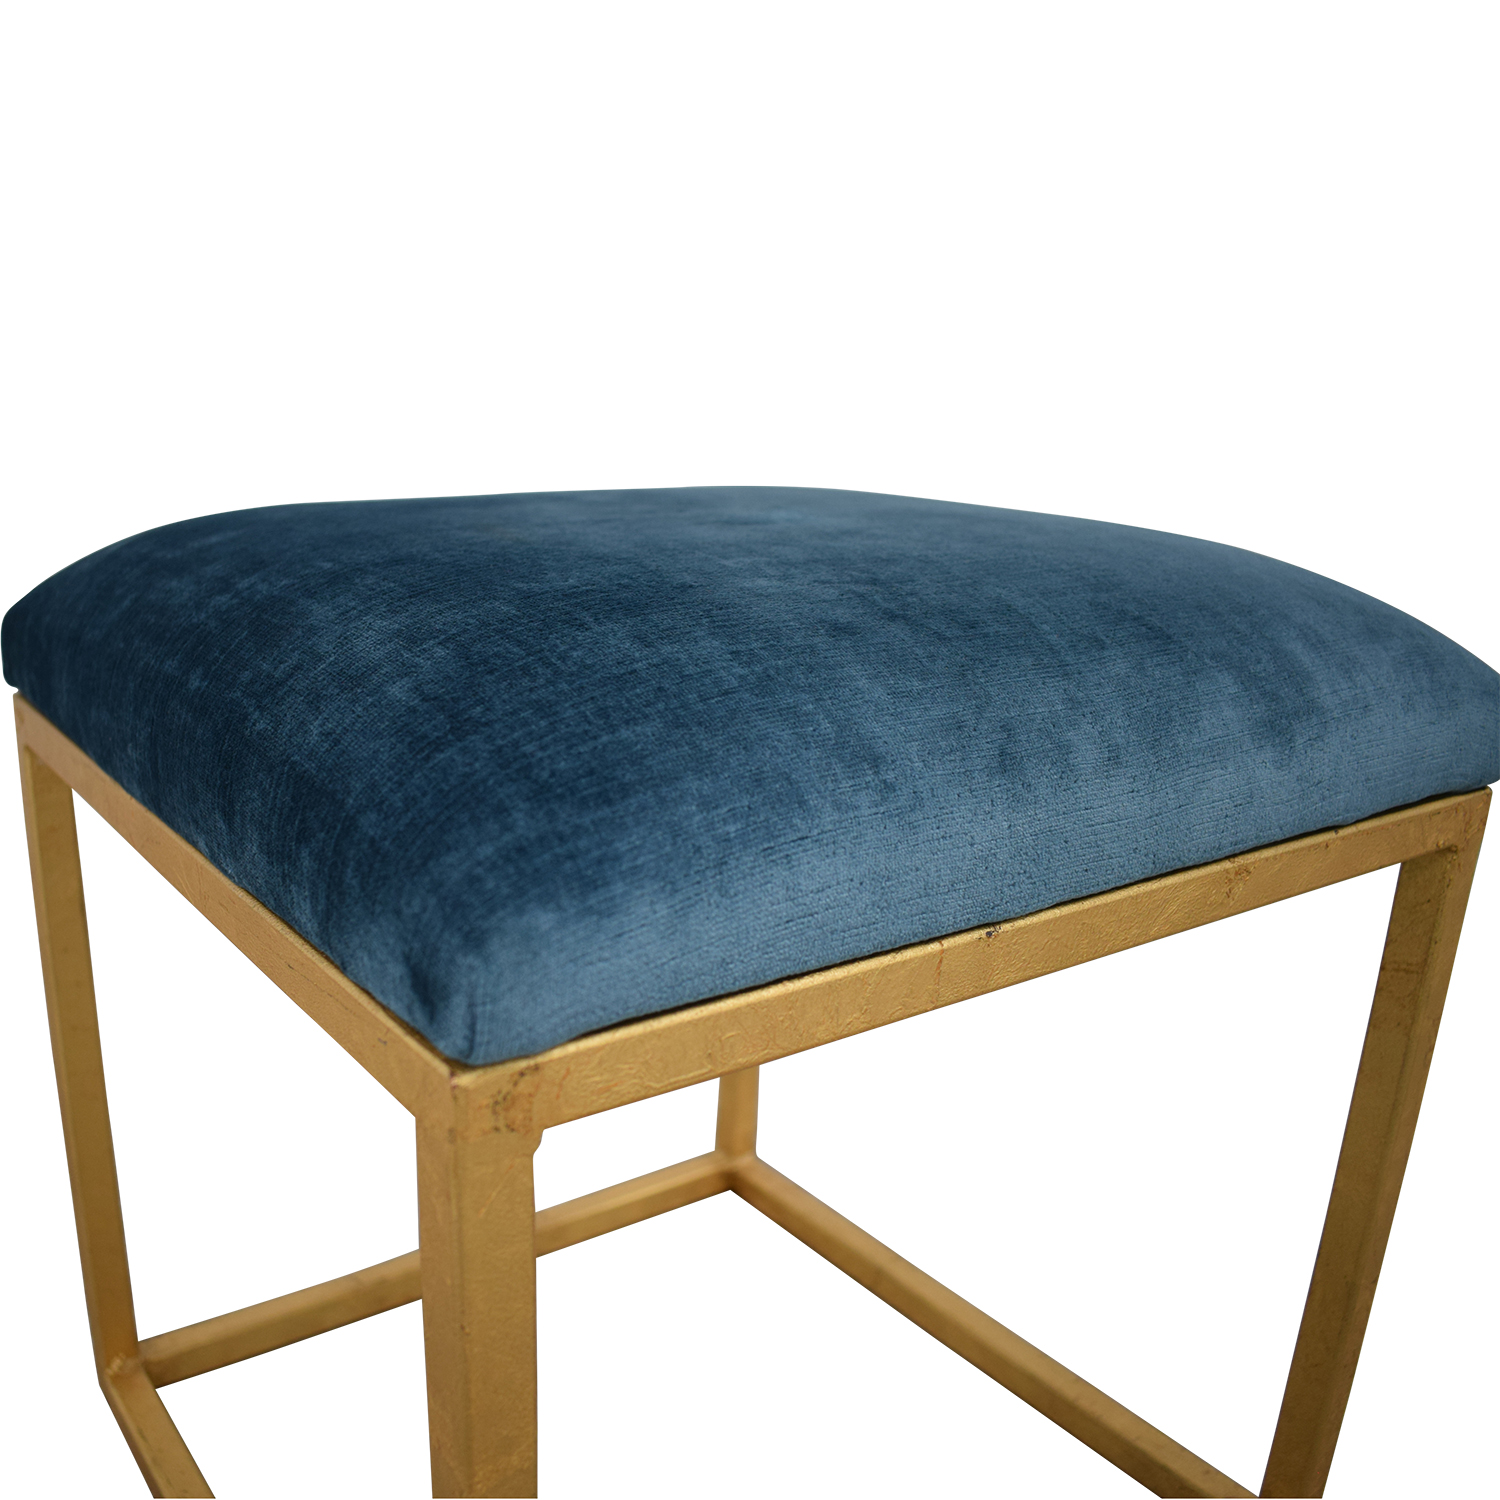 buy One Kings Lane One Kings Lane Moss Studio Block Velvet Ottoman online